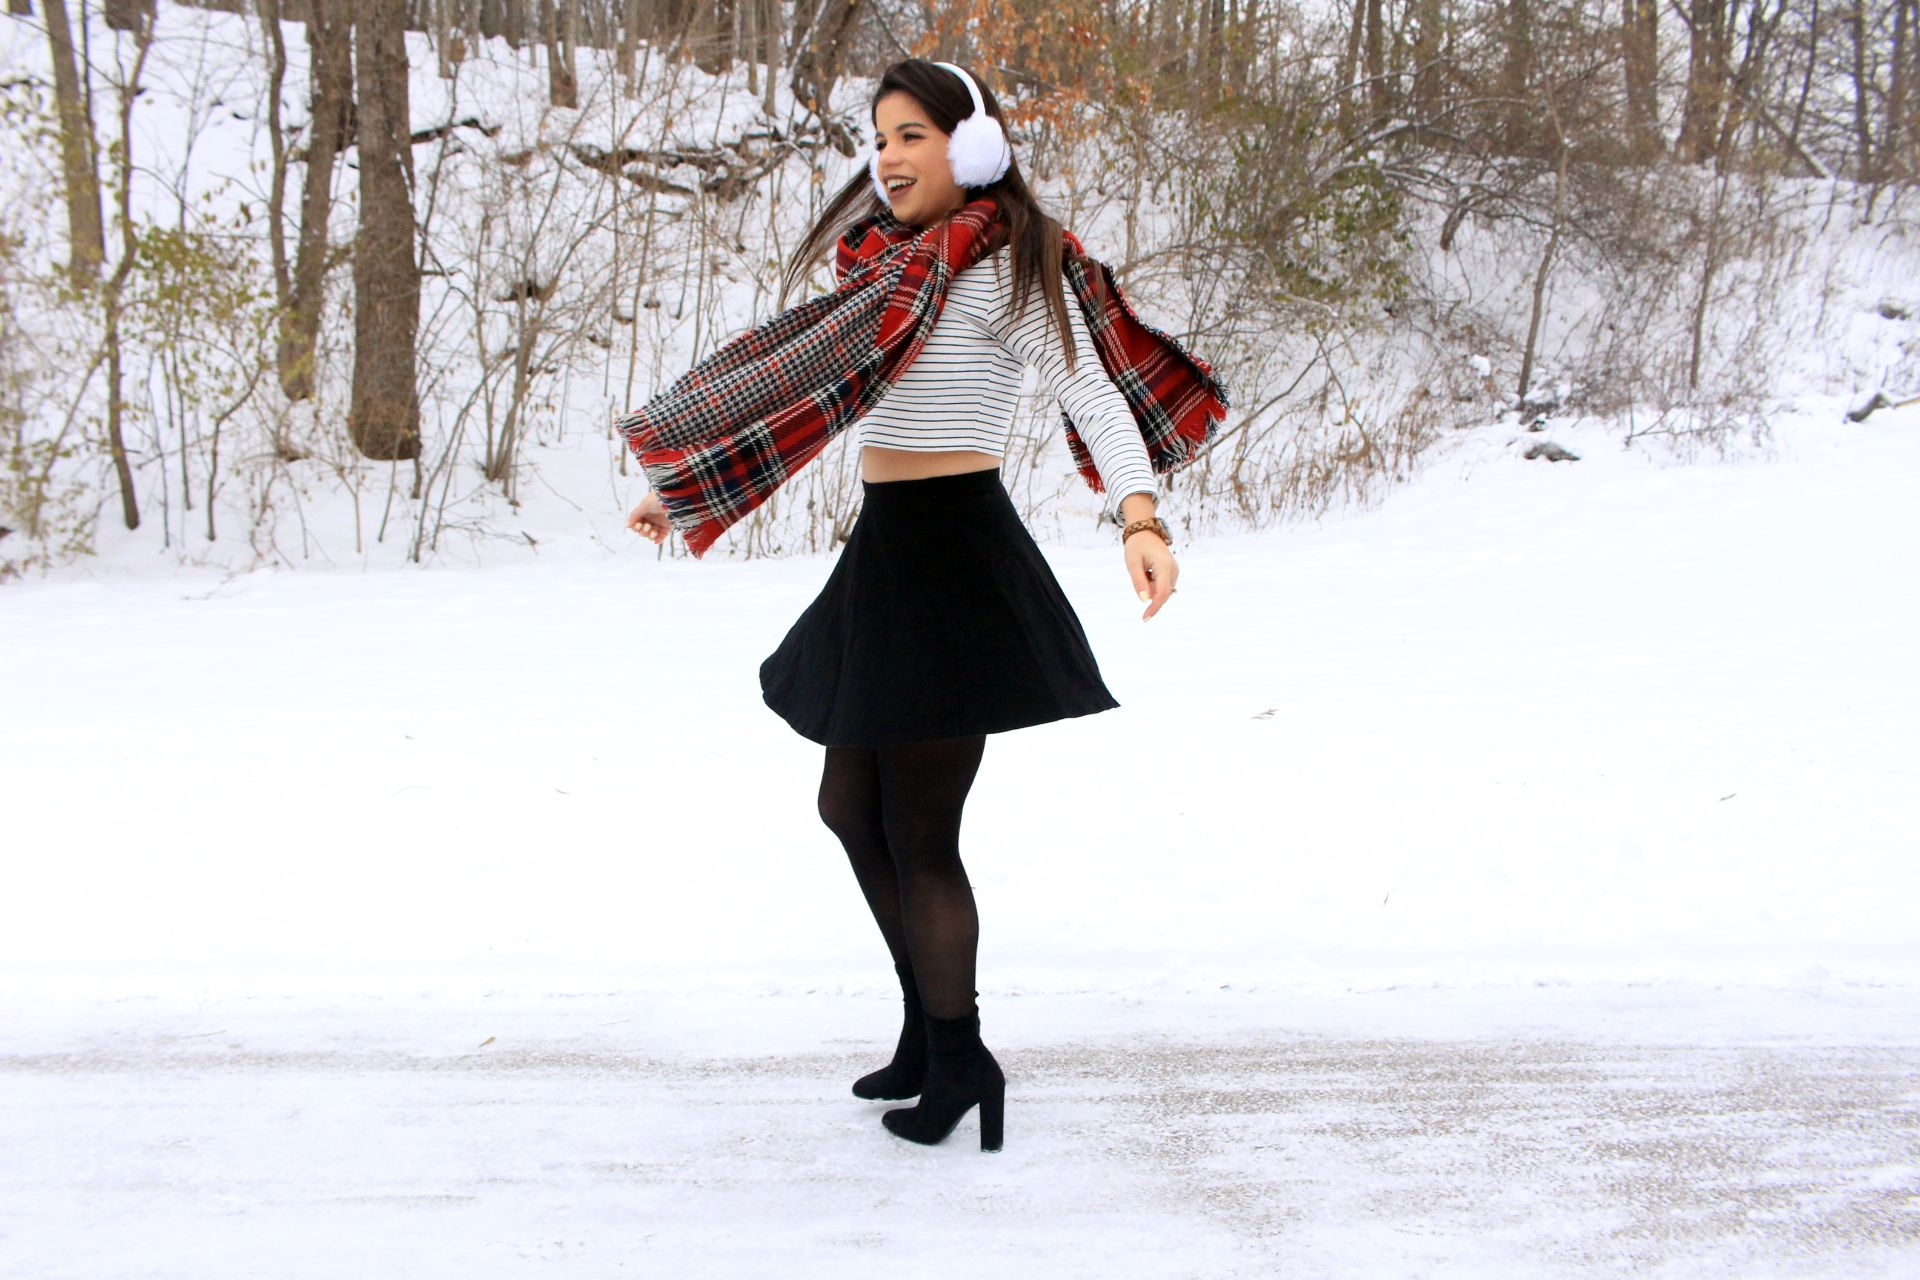 atuendos para invierno / Chicago fashion blogger